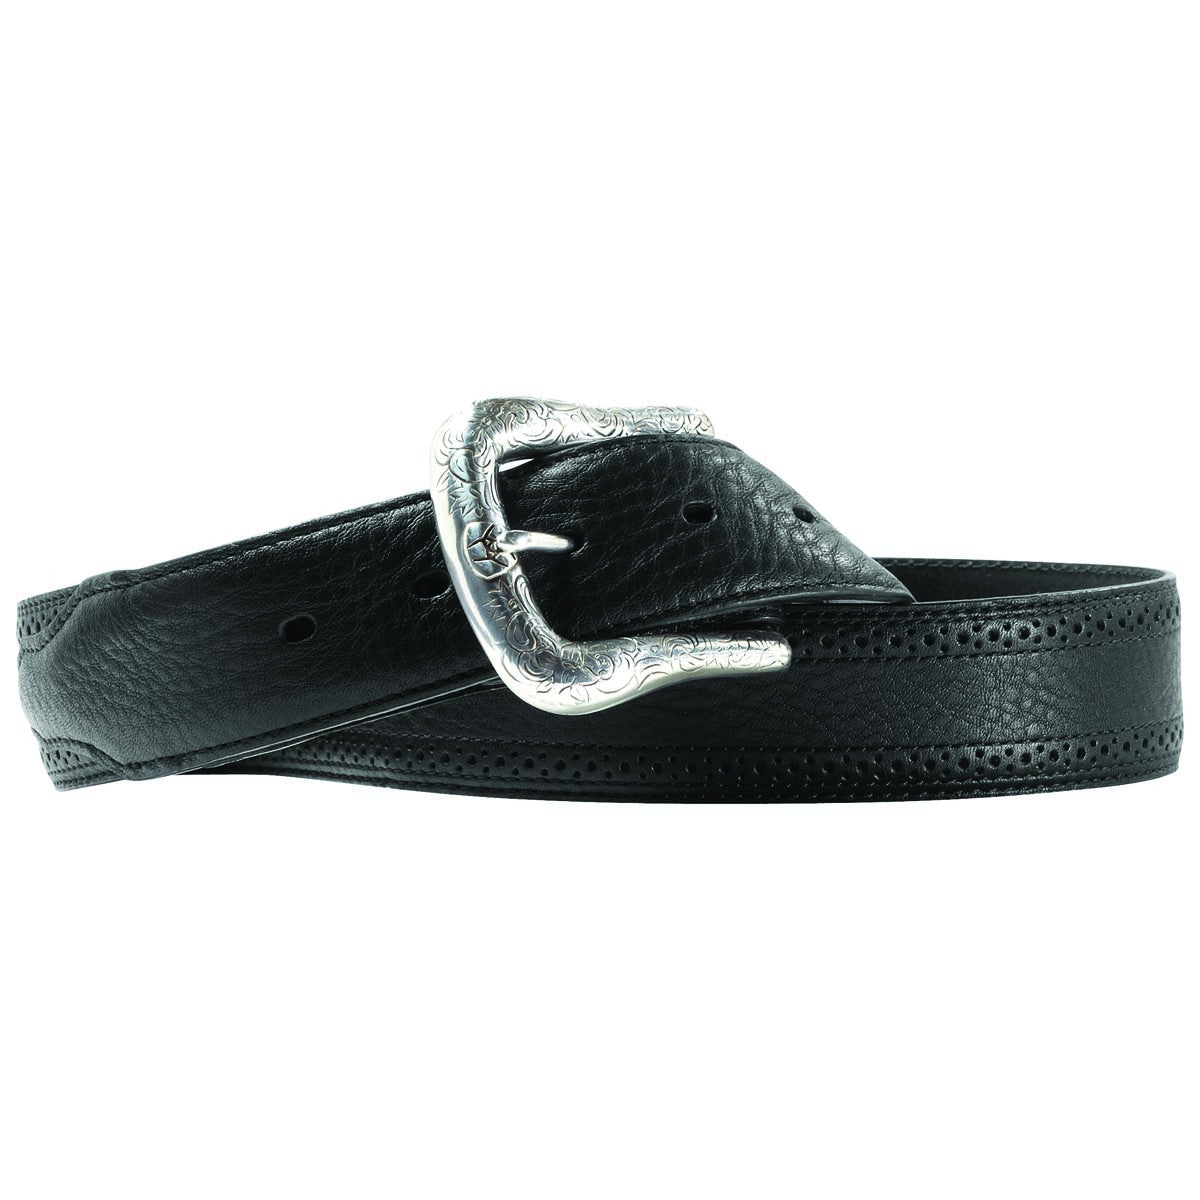 Men's Ariat Belt #A10004353